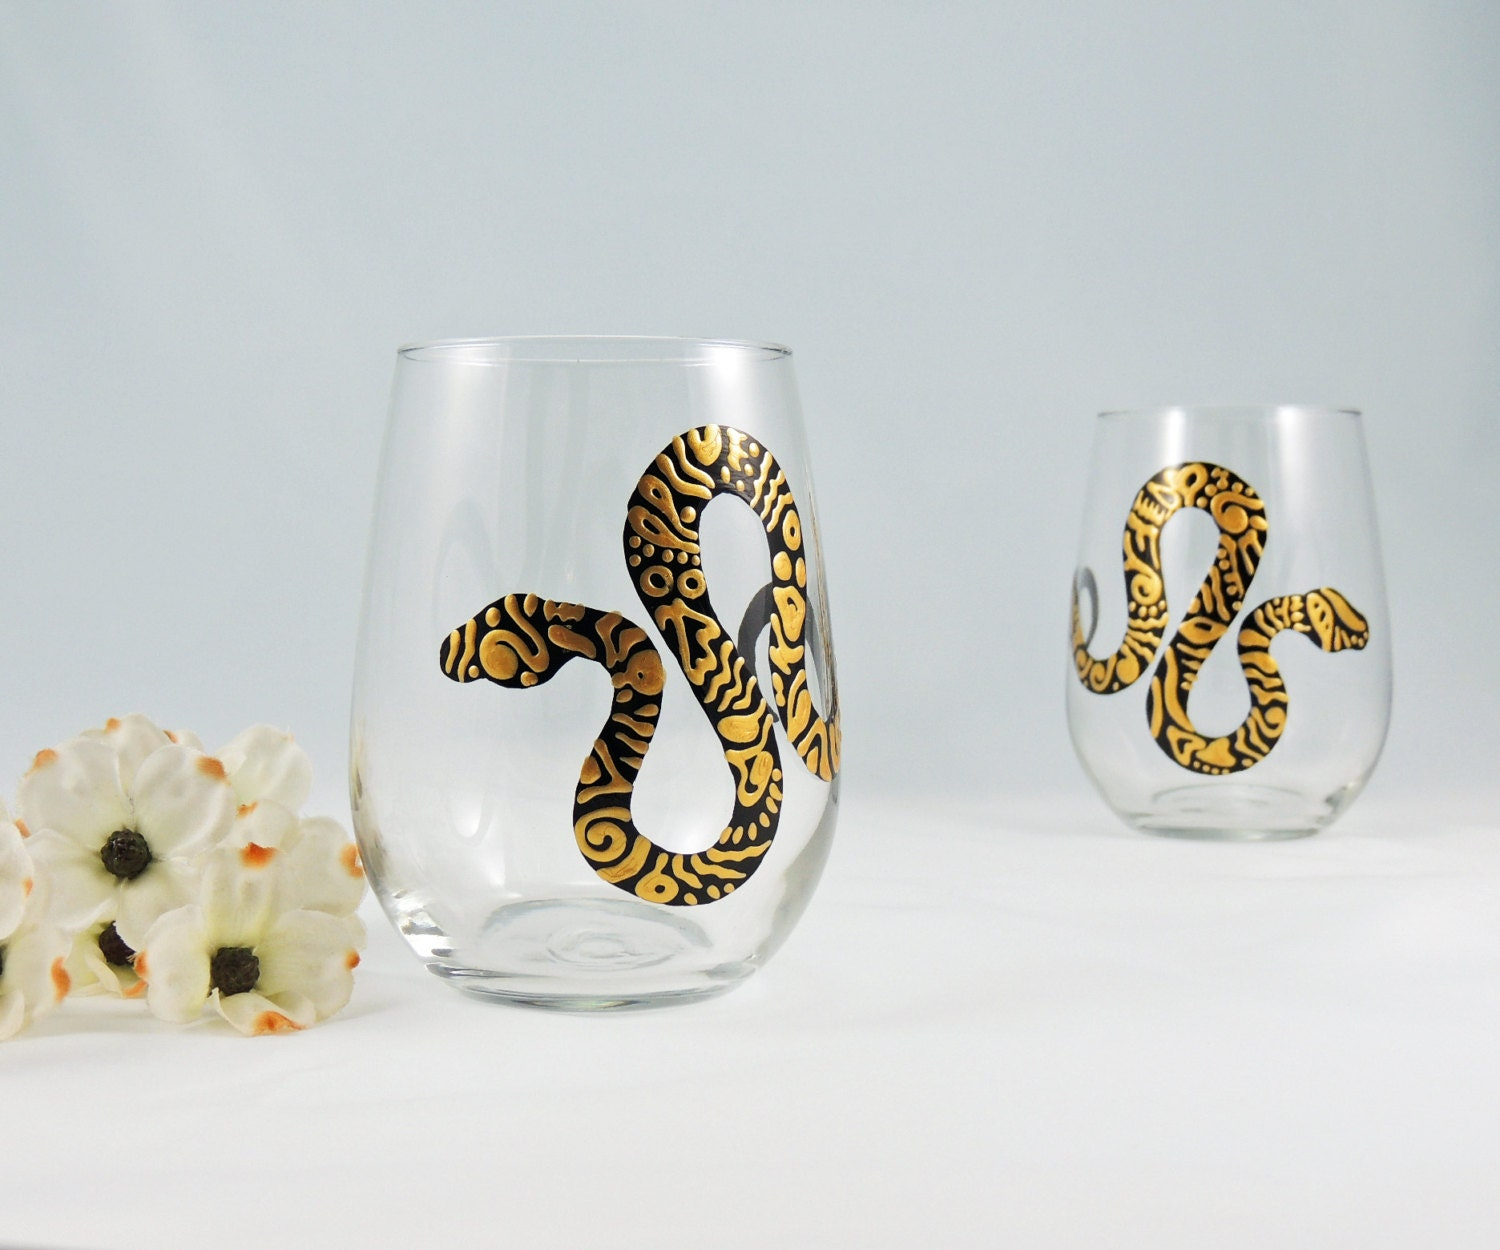 Snake wine glasses hand painted stemless glasses set of 2 for Painted stemless wine glasses